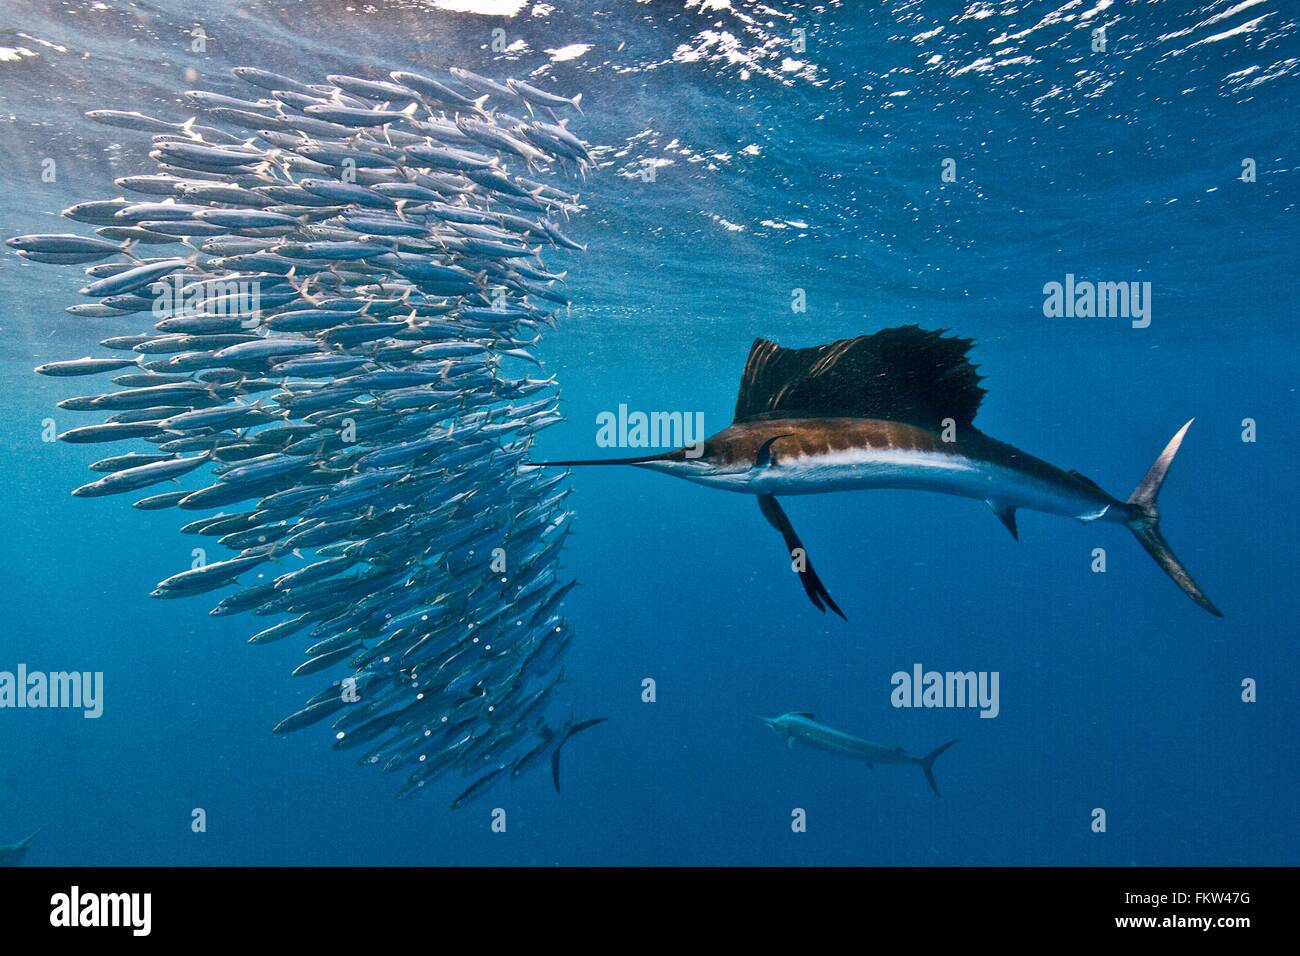 Atlantic sailfish (Istiophorus albicans) attacking a sardine baitball hoping to strike one with its serrated bill - Stock Image